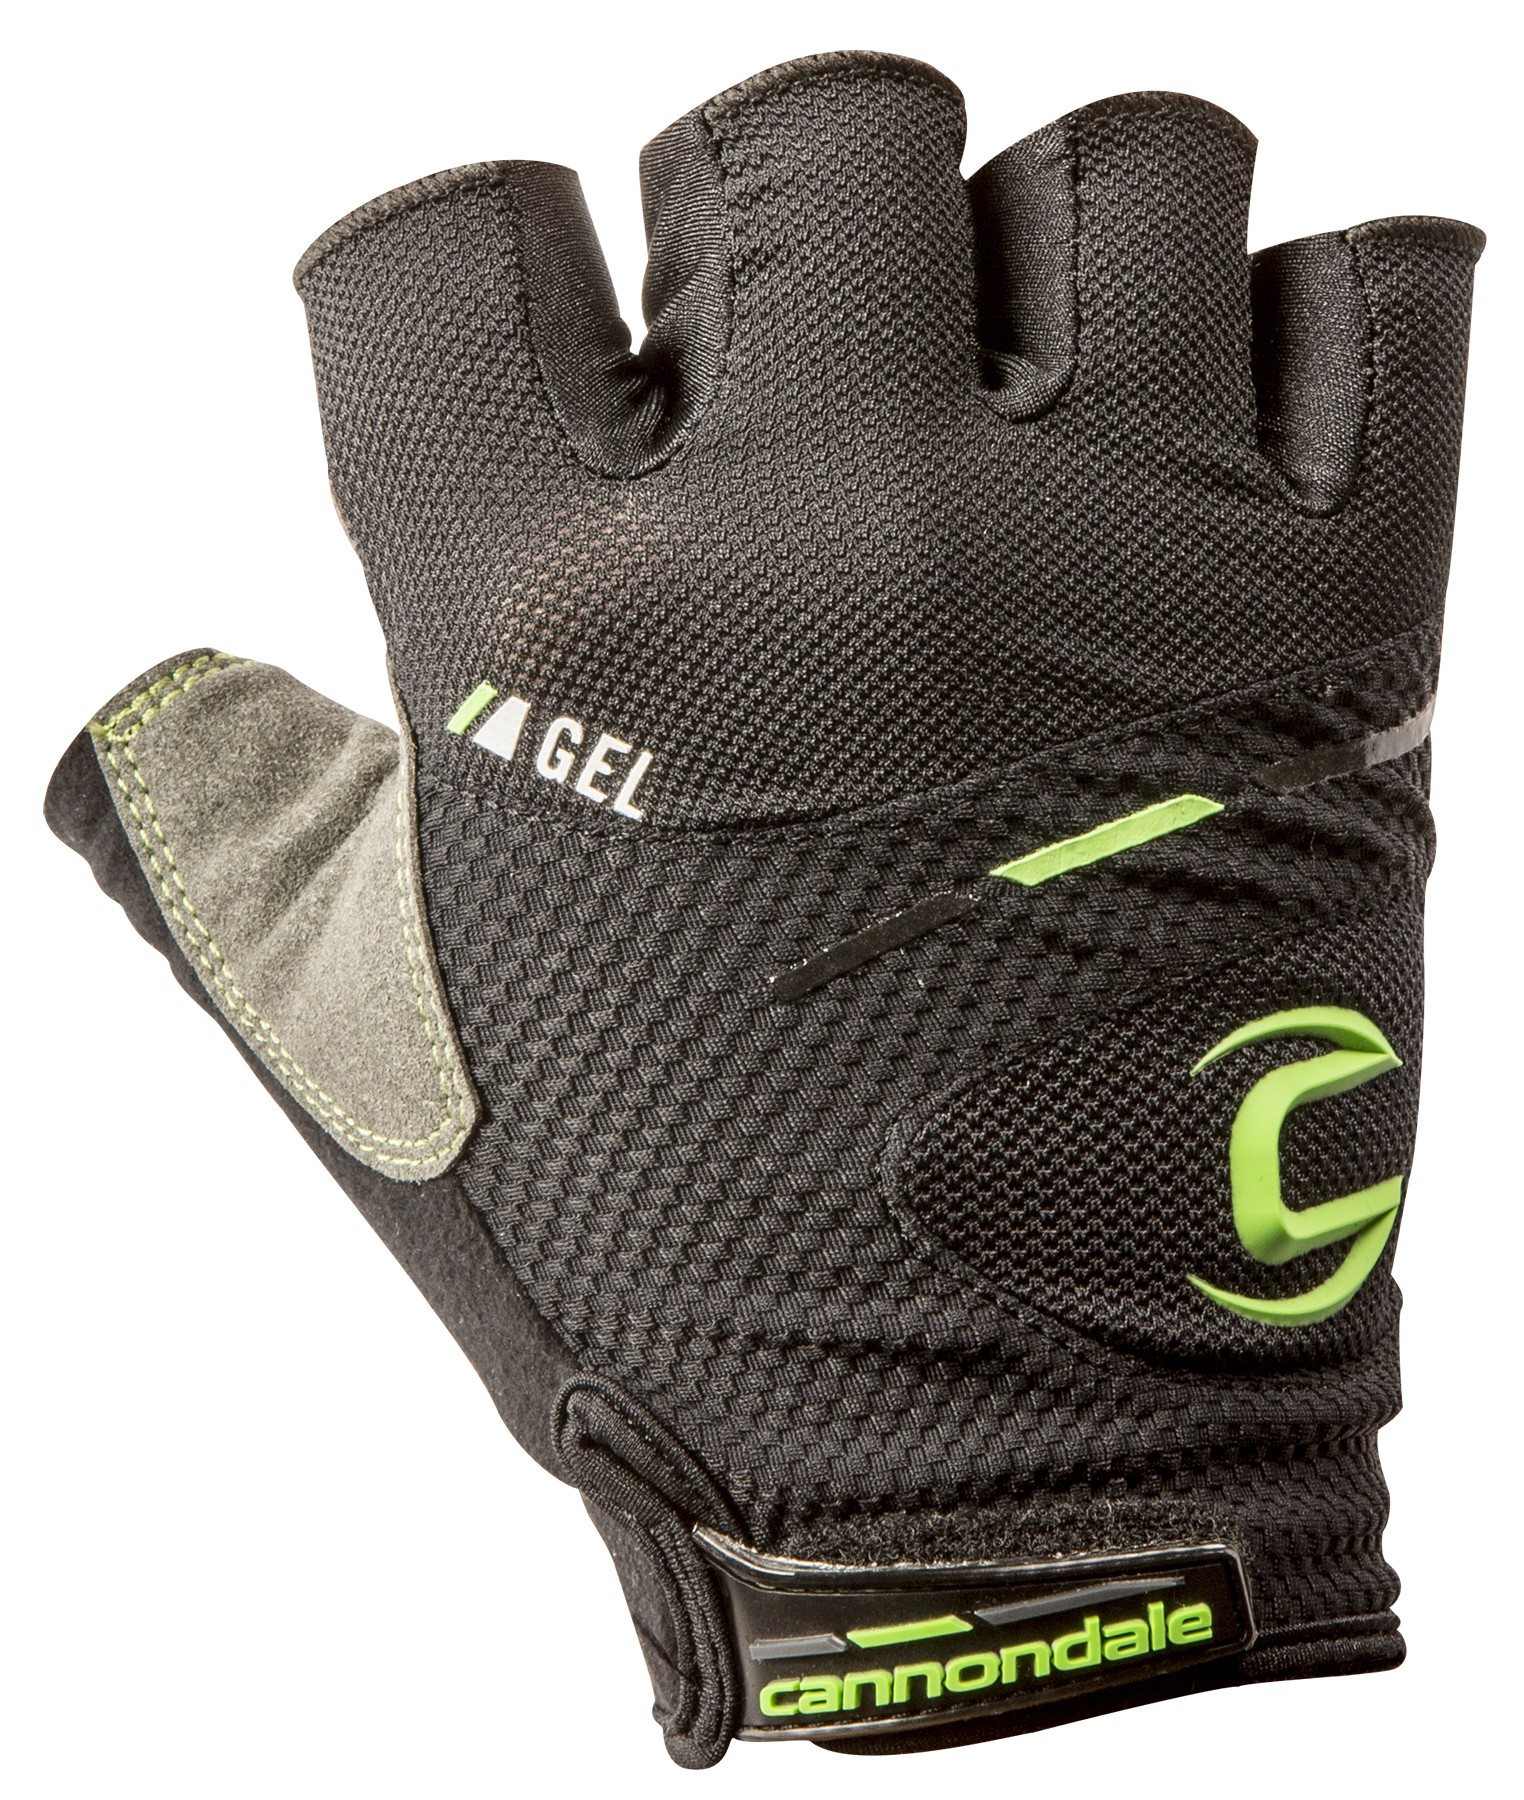 Endurance_Race_gloves_5G401_BZR